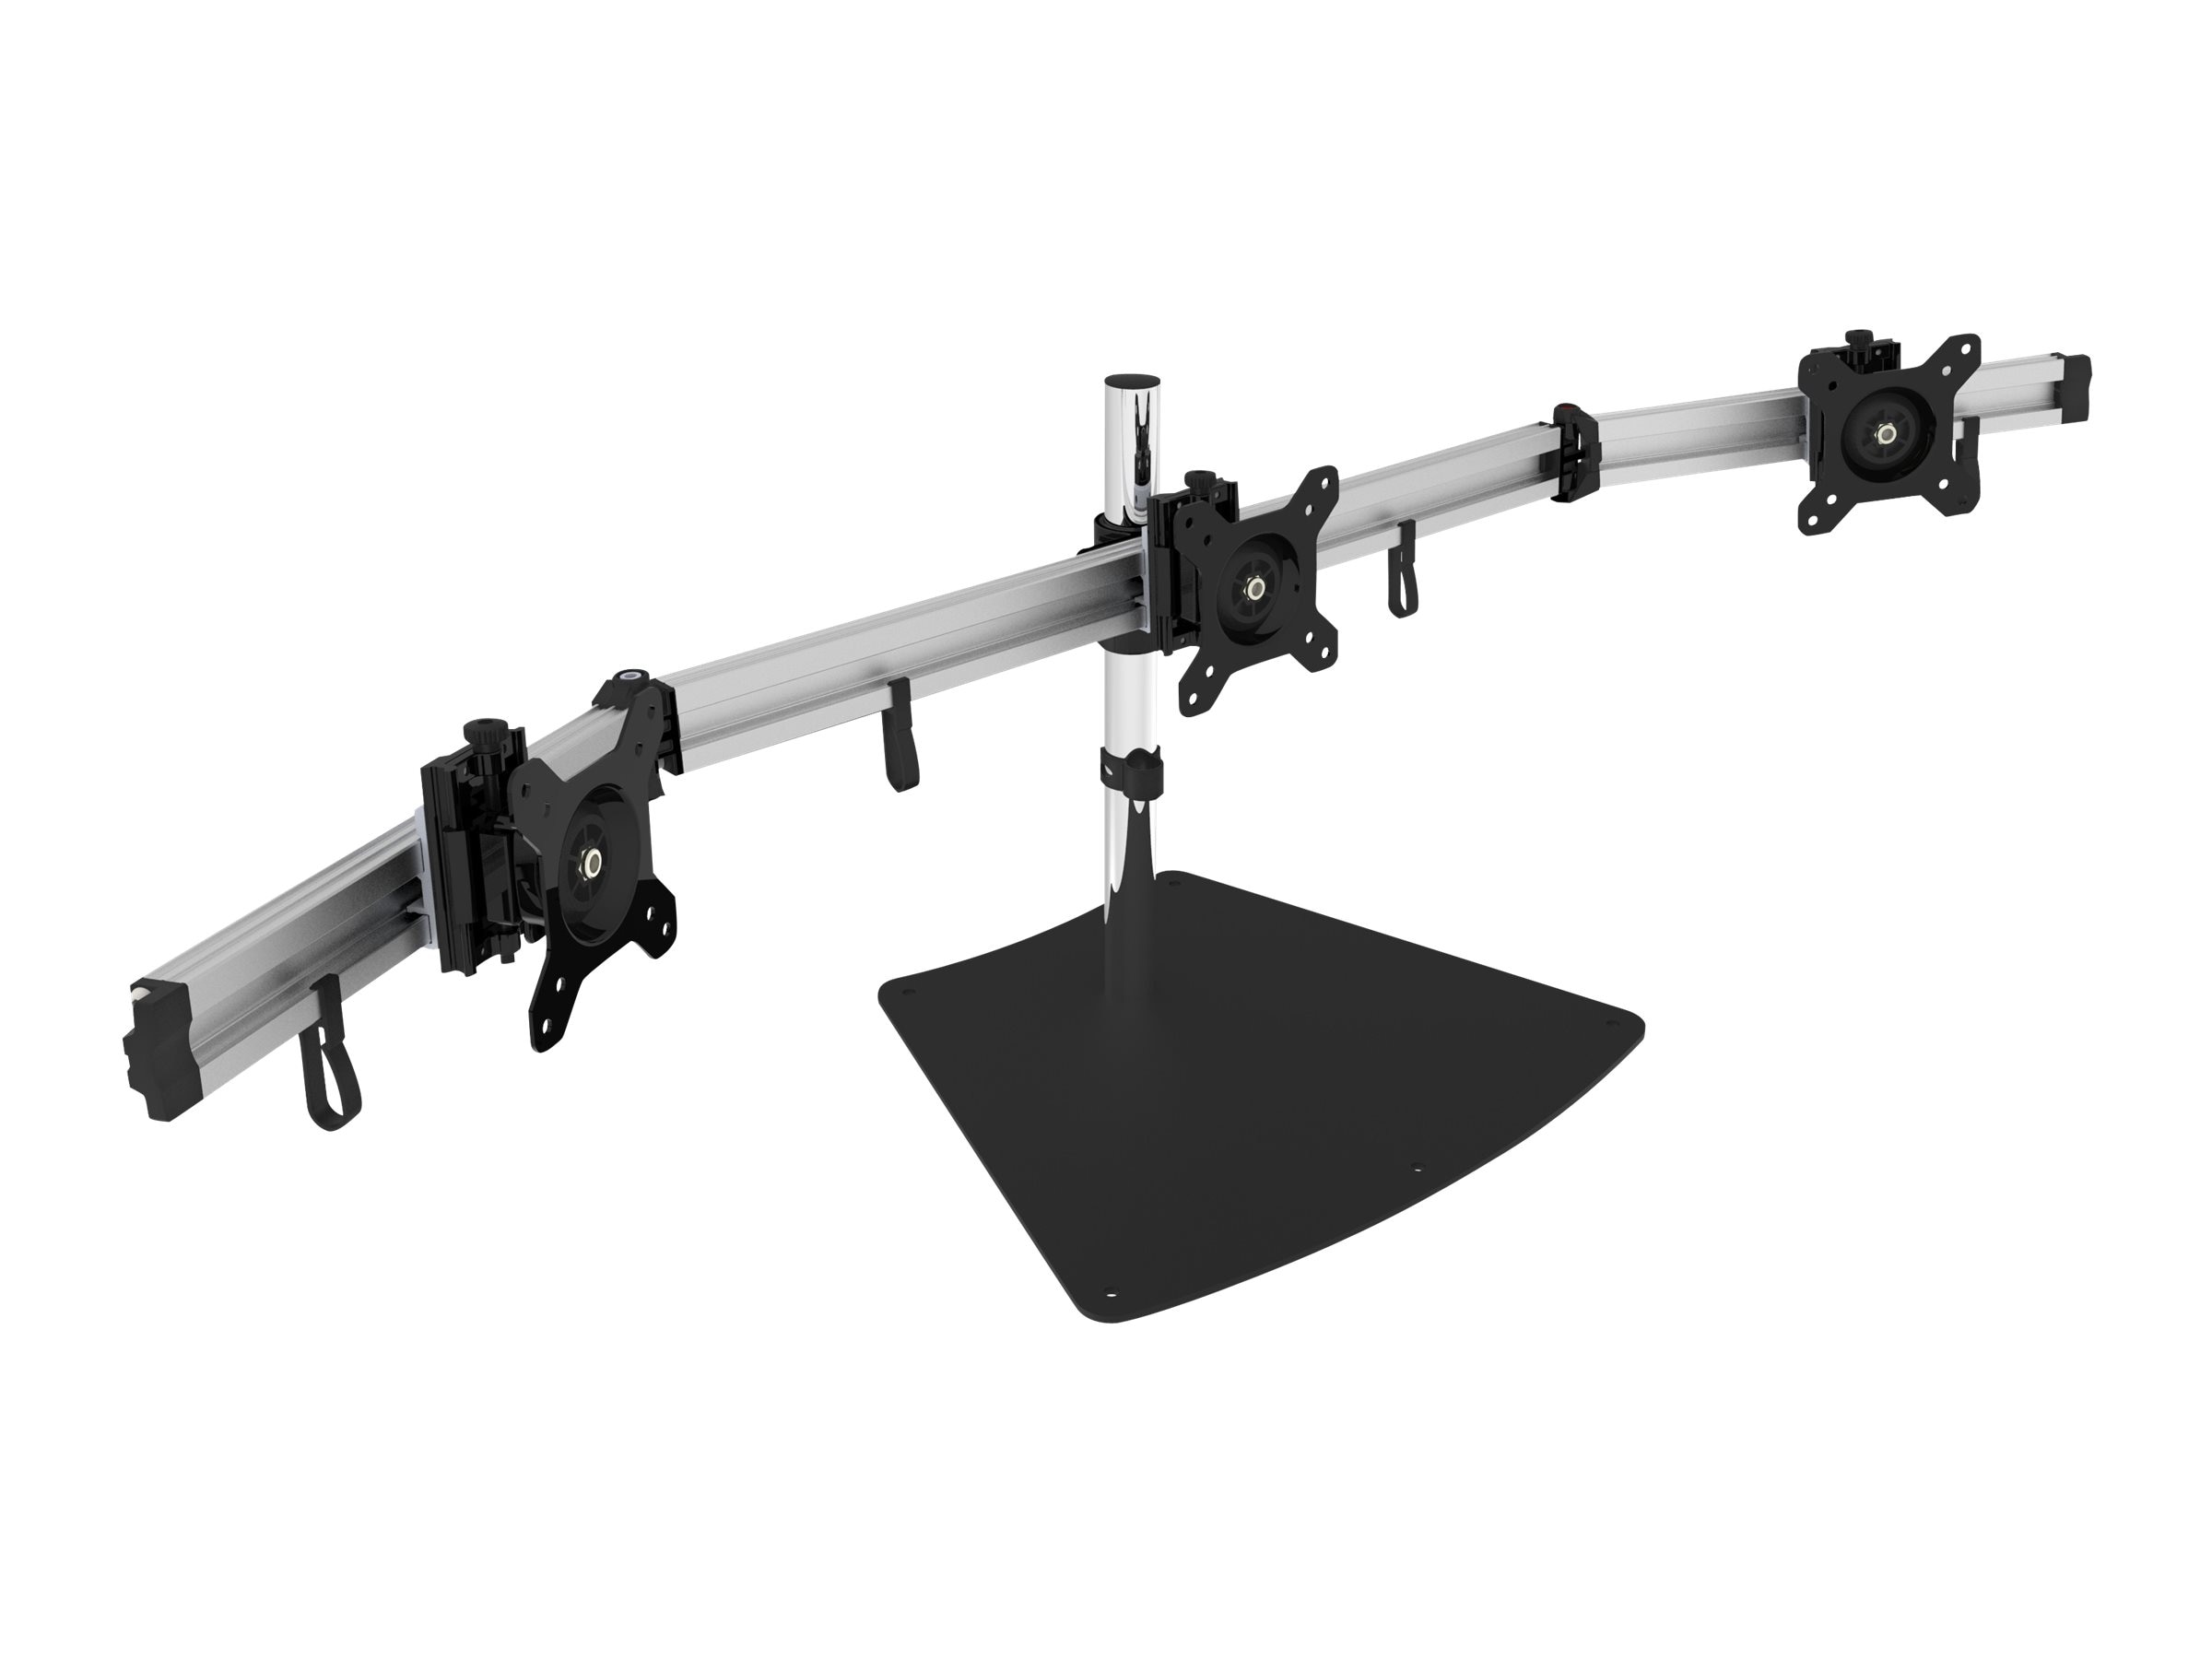 Siig Triple Monitor Desk Mount for 13 to 27 Displays, CE-MT2111-S1